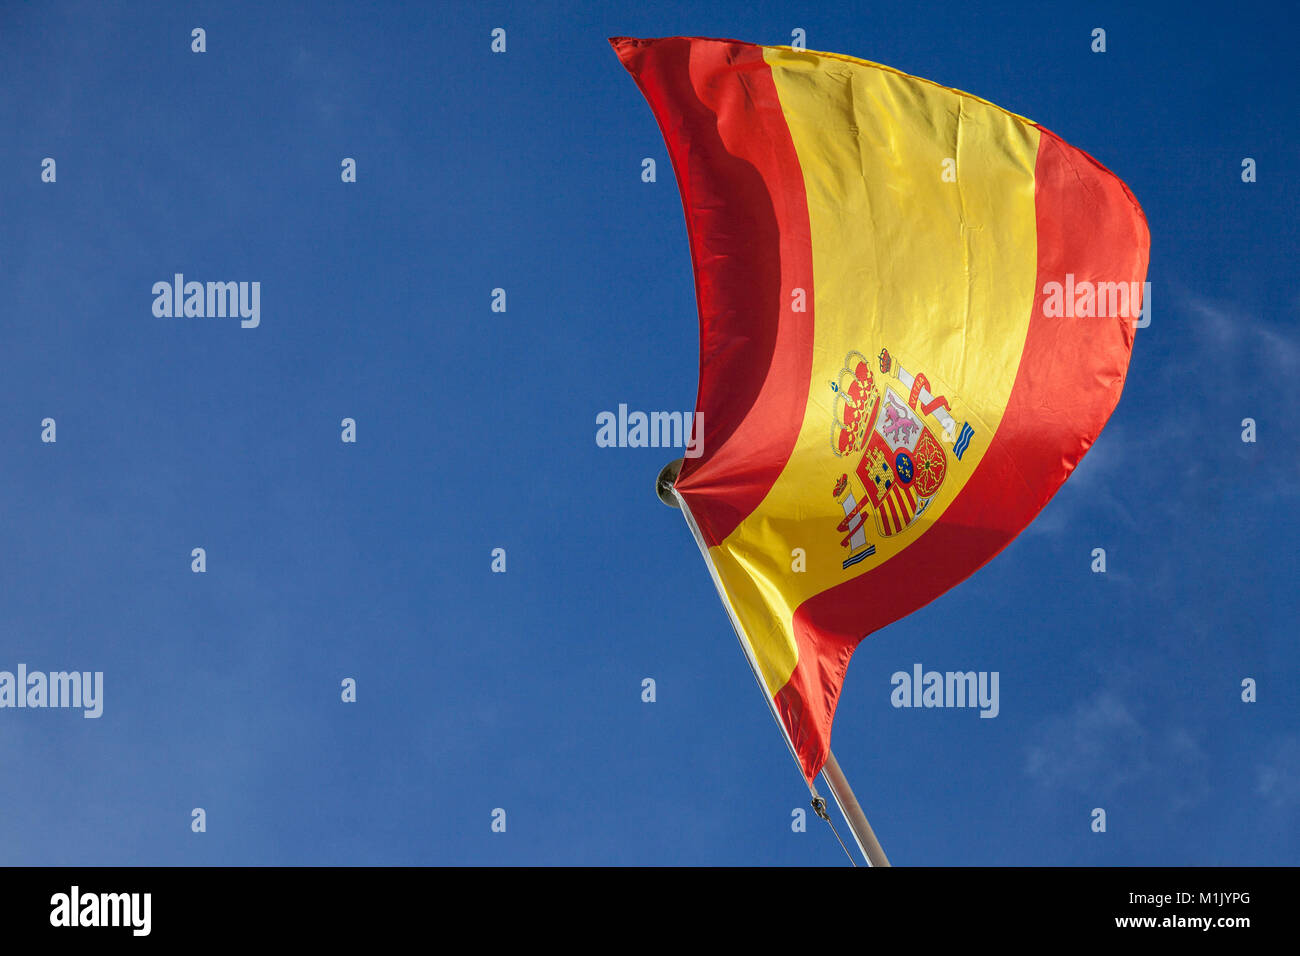 Picture of the Spanish flag waiving in the air on a sunny afternoon with a blue sky background. This flag is the - Stock Image